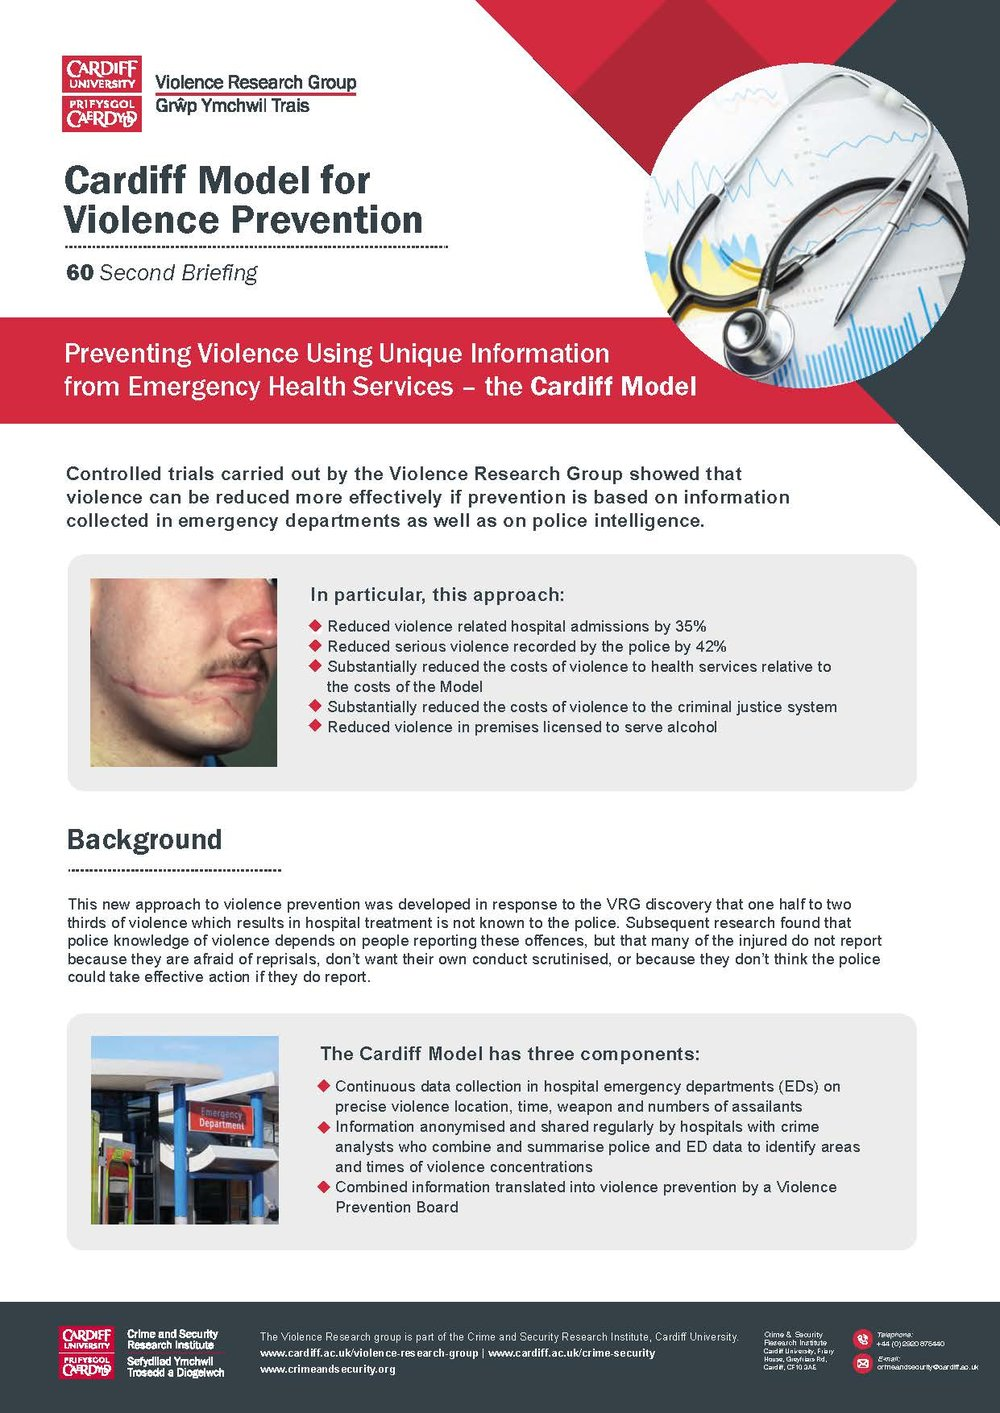 Preventing Violence Using Unique Information from Emergency Health Services – the Cardiff Model -